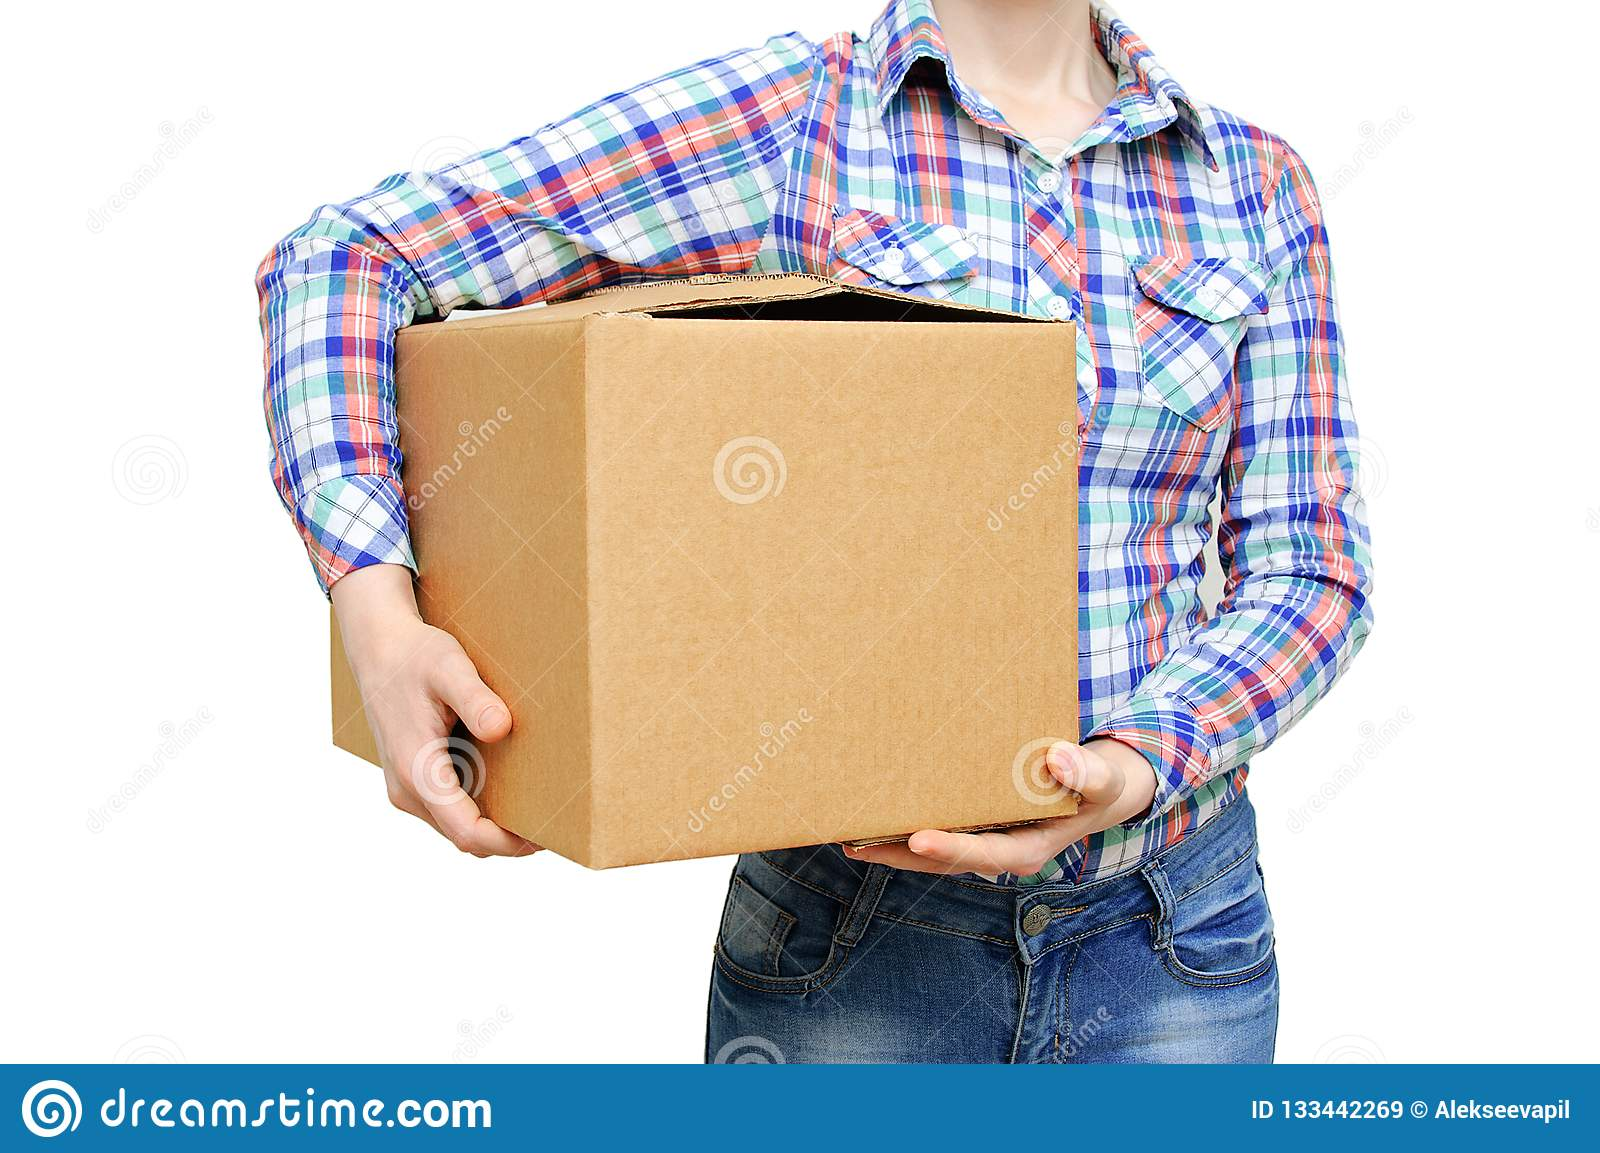 Girl in a shirt and jeans holds a large cardboard box. White isolate